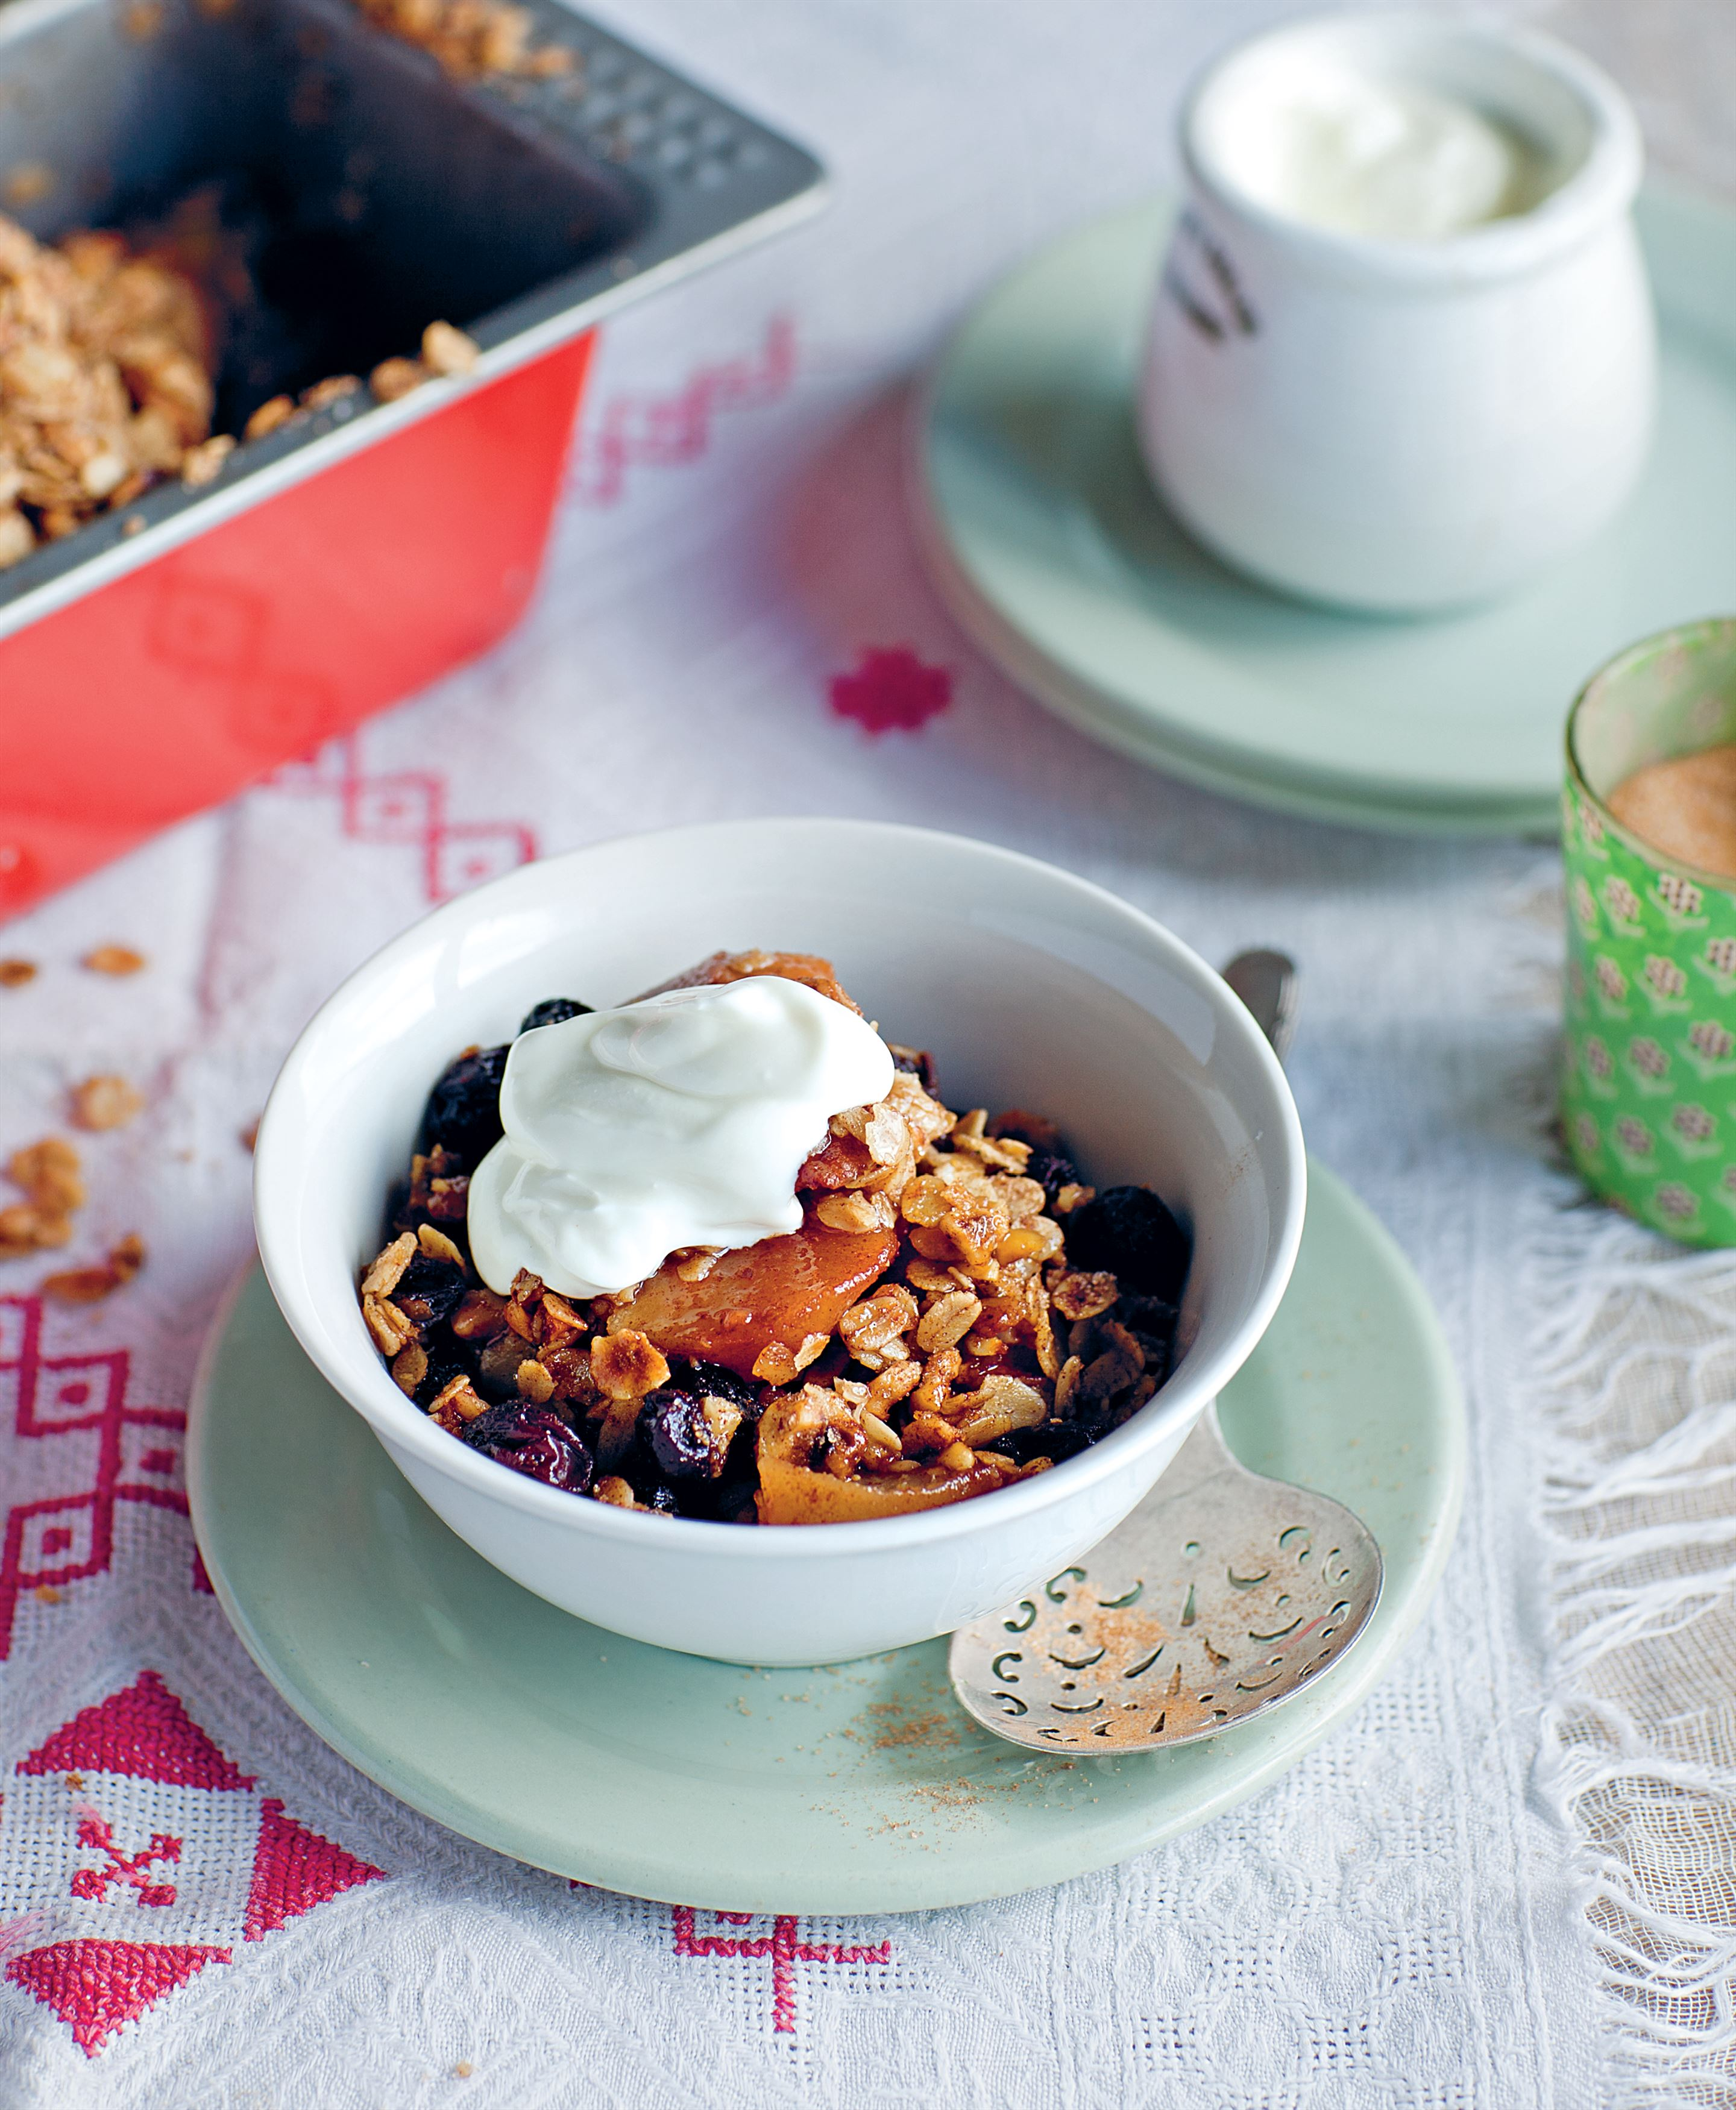 Pear and raisin crumble